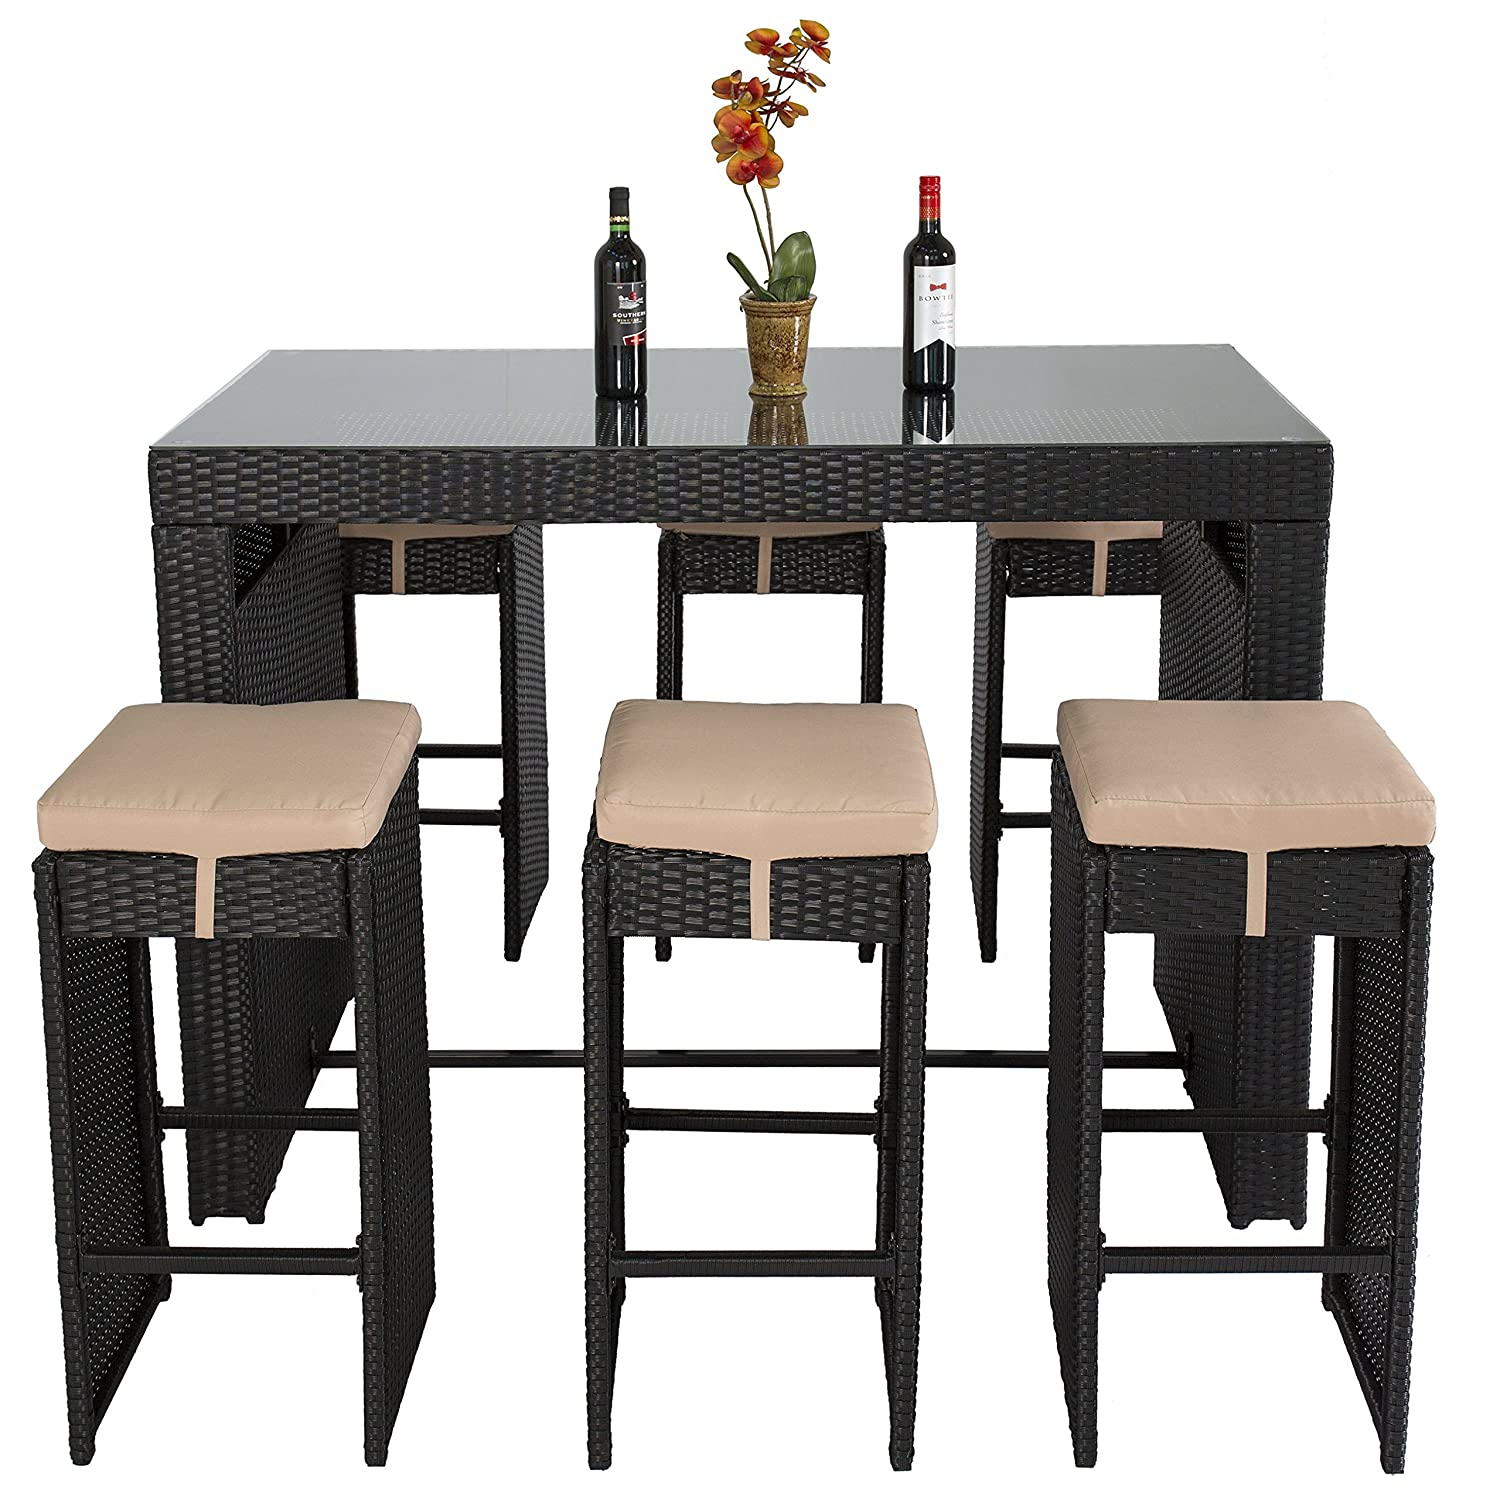 amazoncom best choice products 7pc rattan wicker barstool dining table set bar stool black garden u0026 outdoor